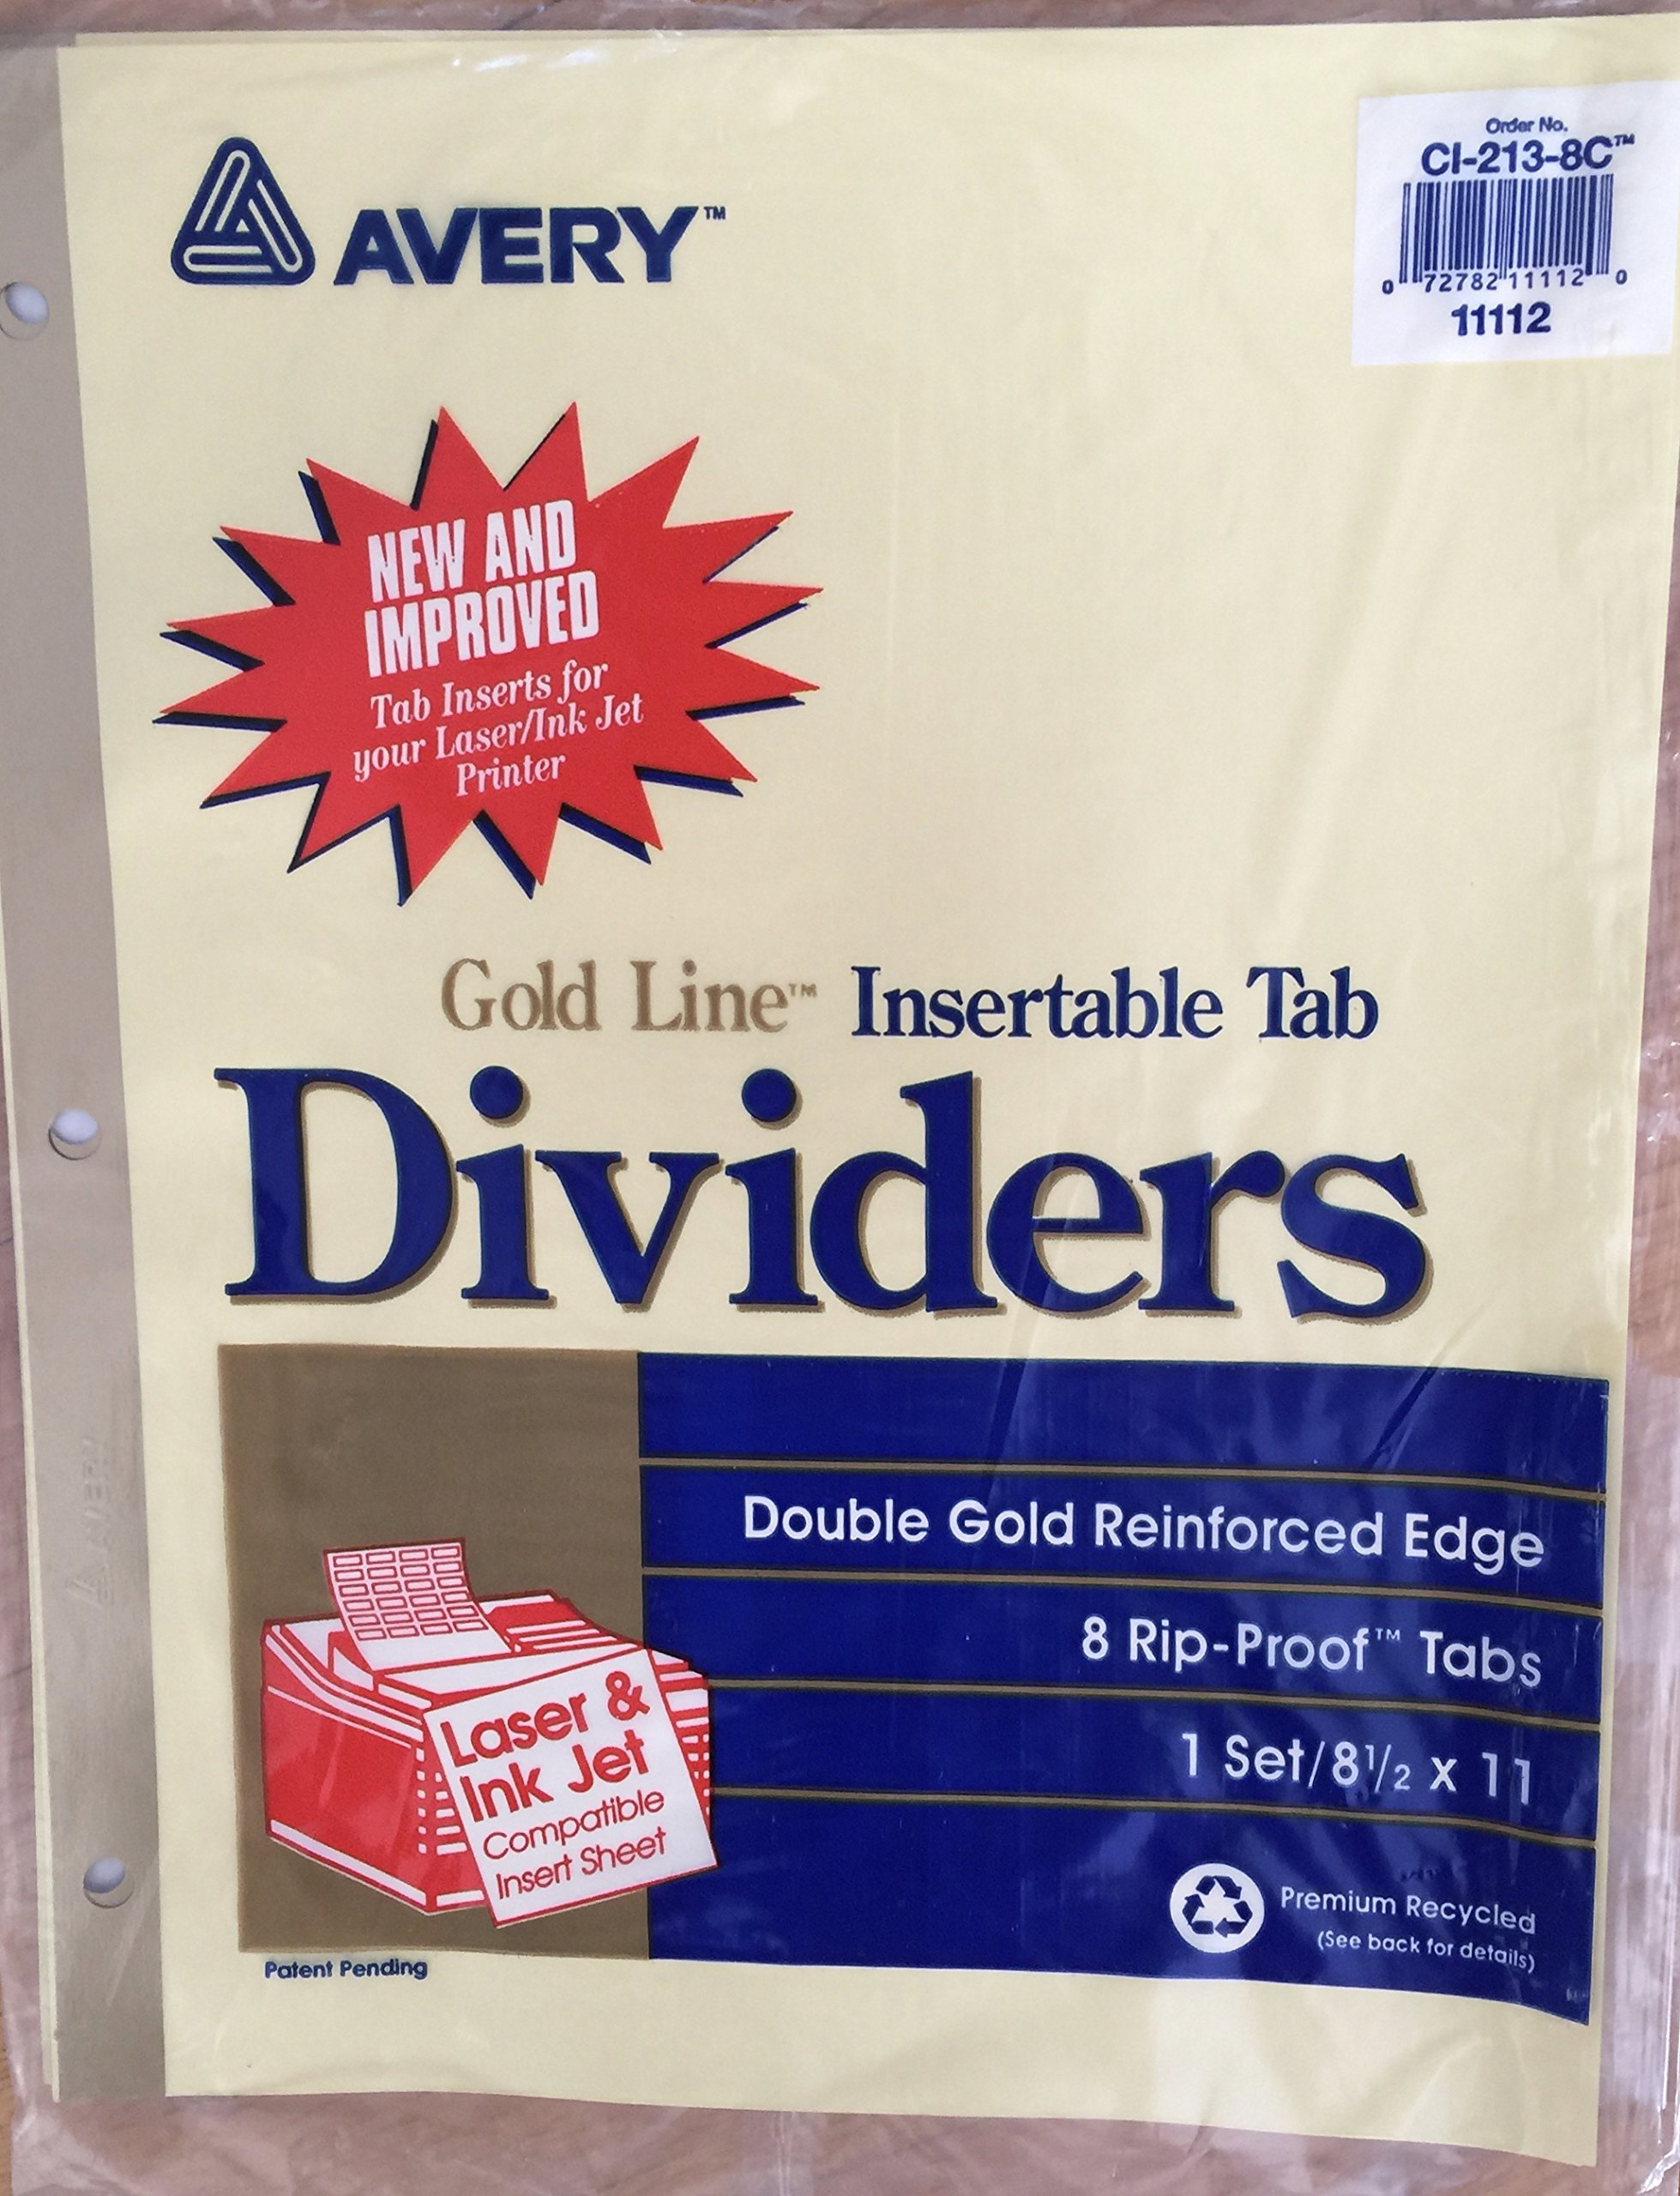 Gold Line Insertable Tab Dividers